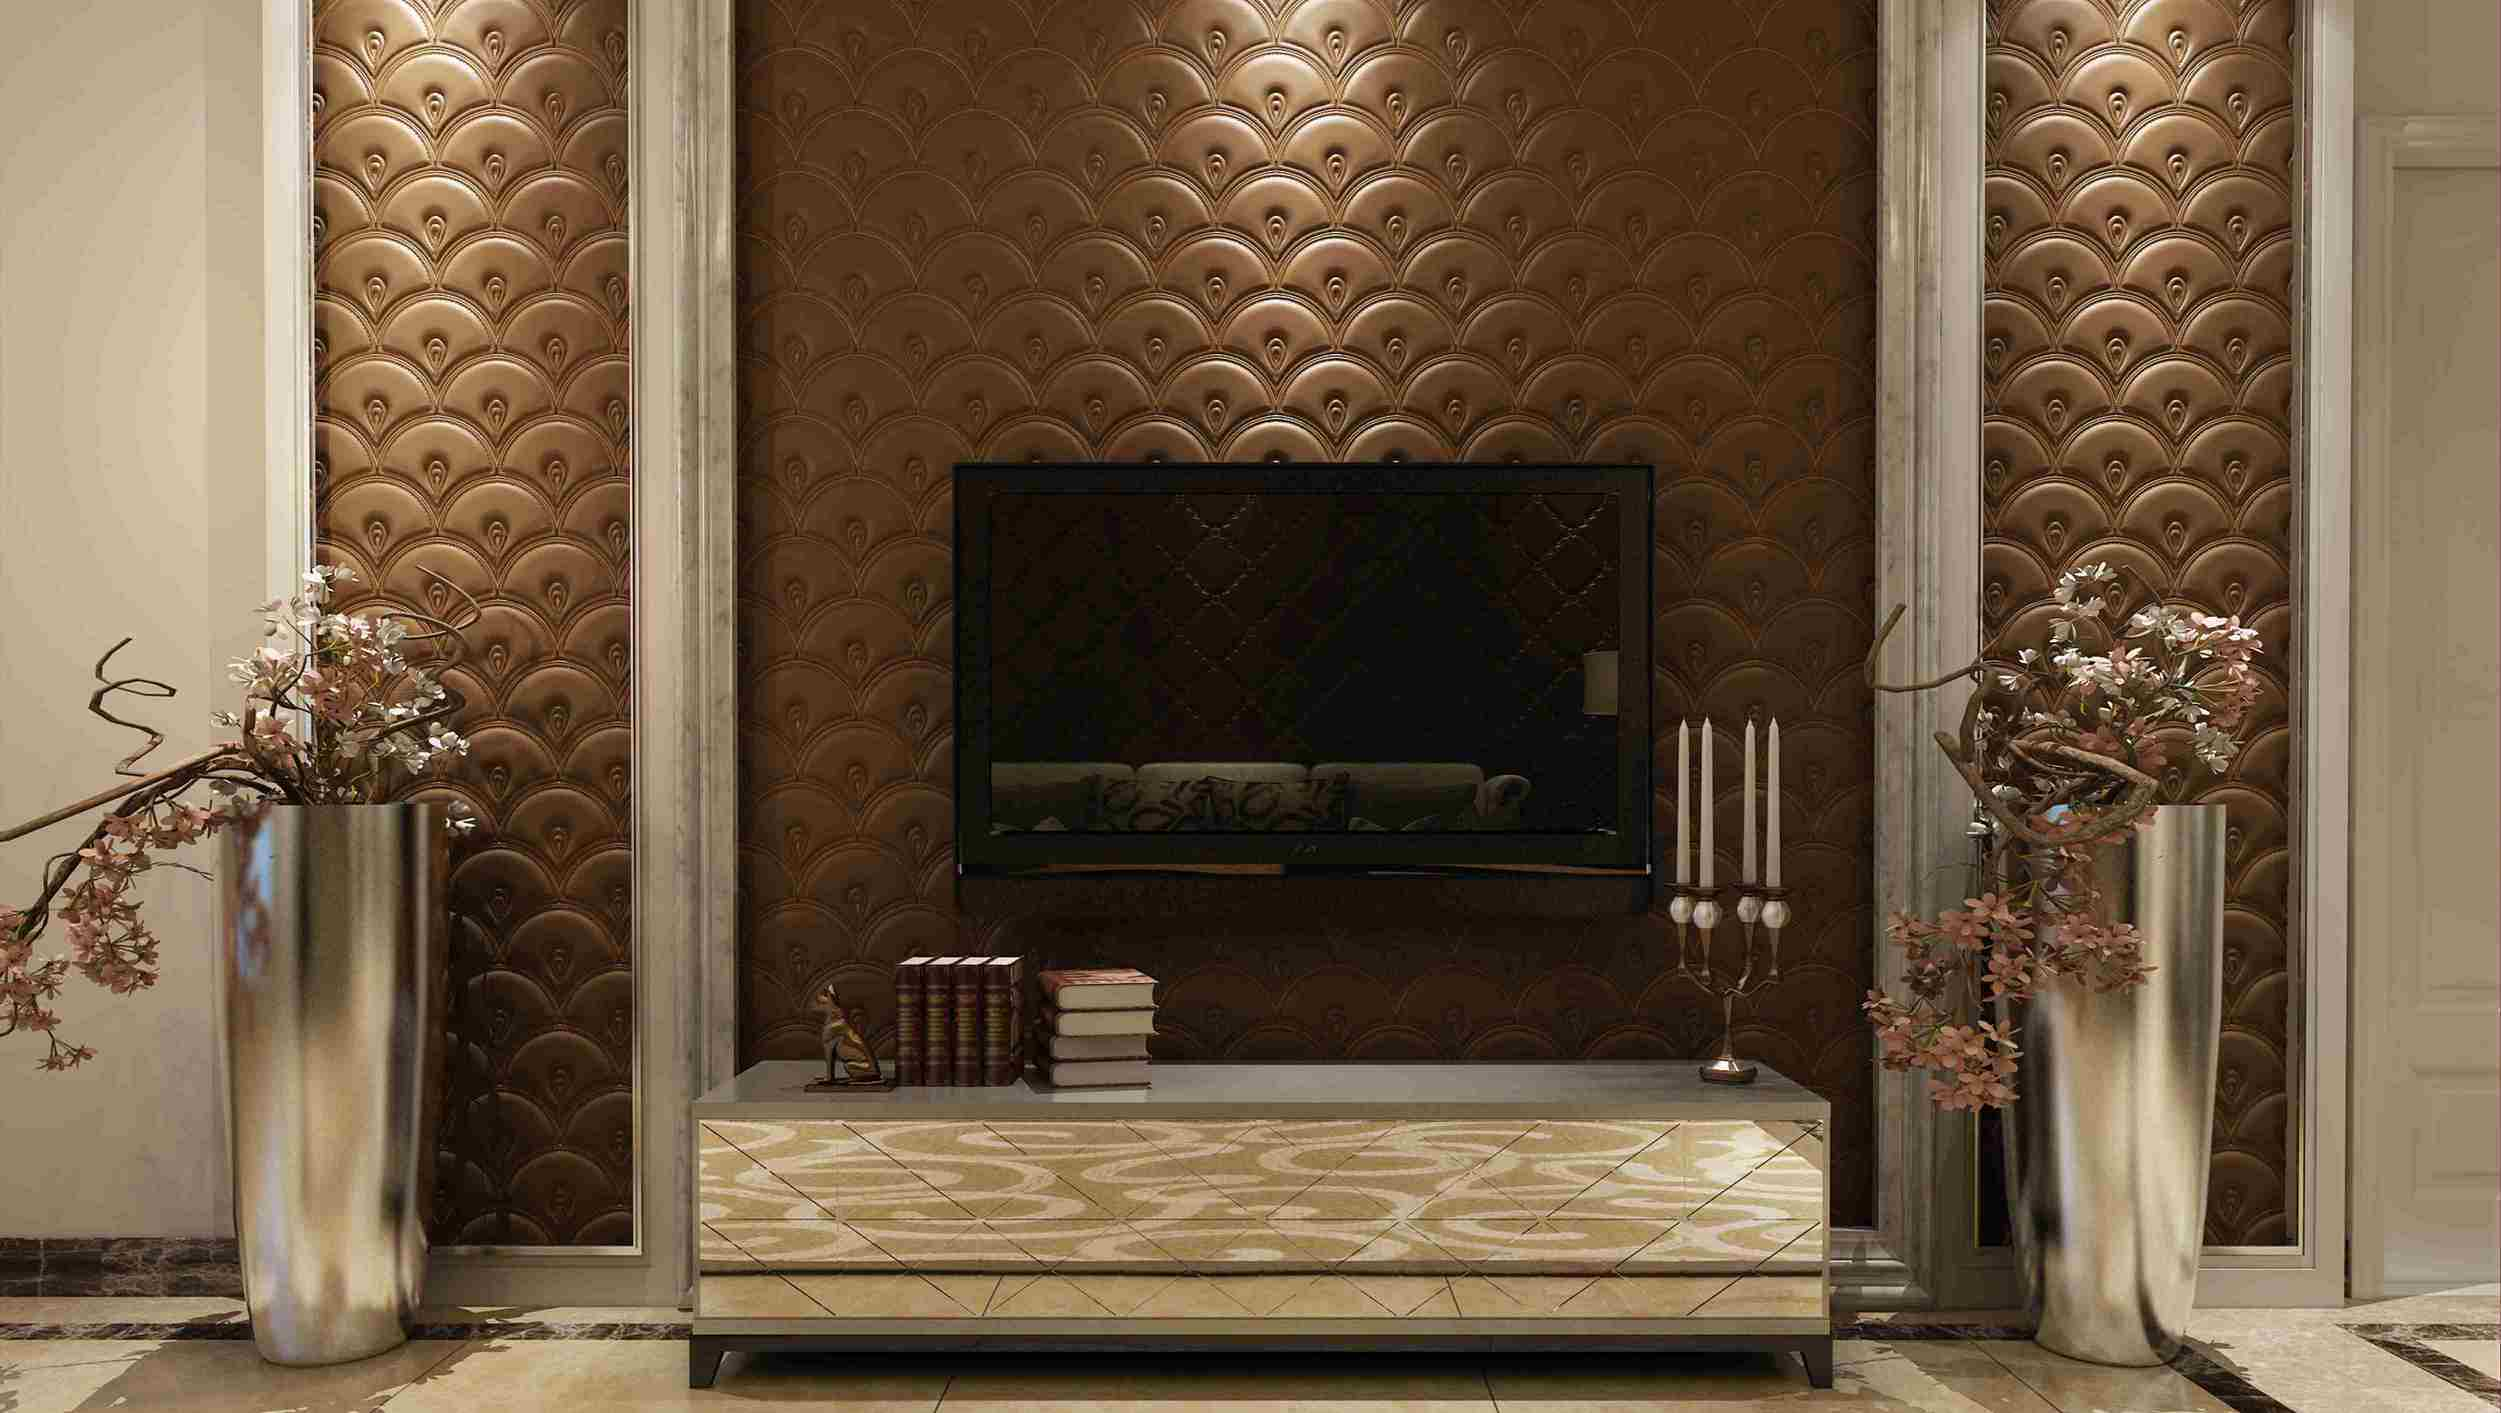 Customized Leather 3D Panel SL-013 for Indoor Wall Decoration